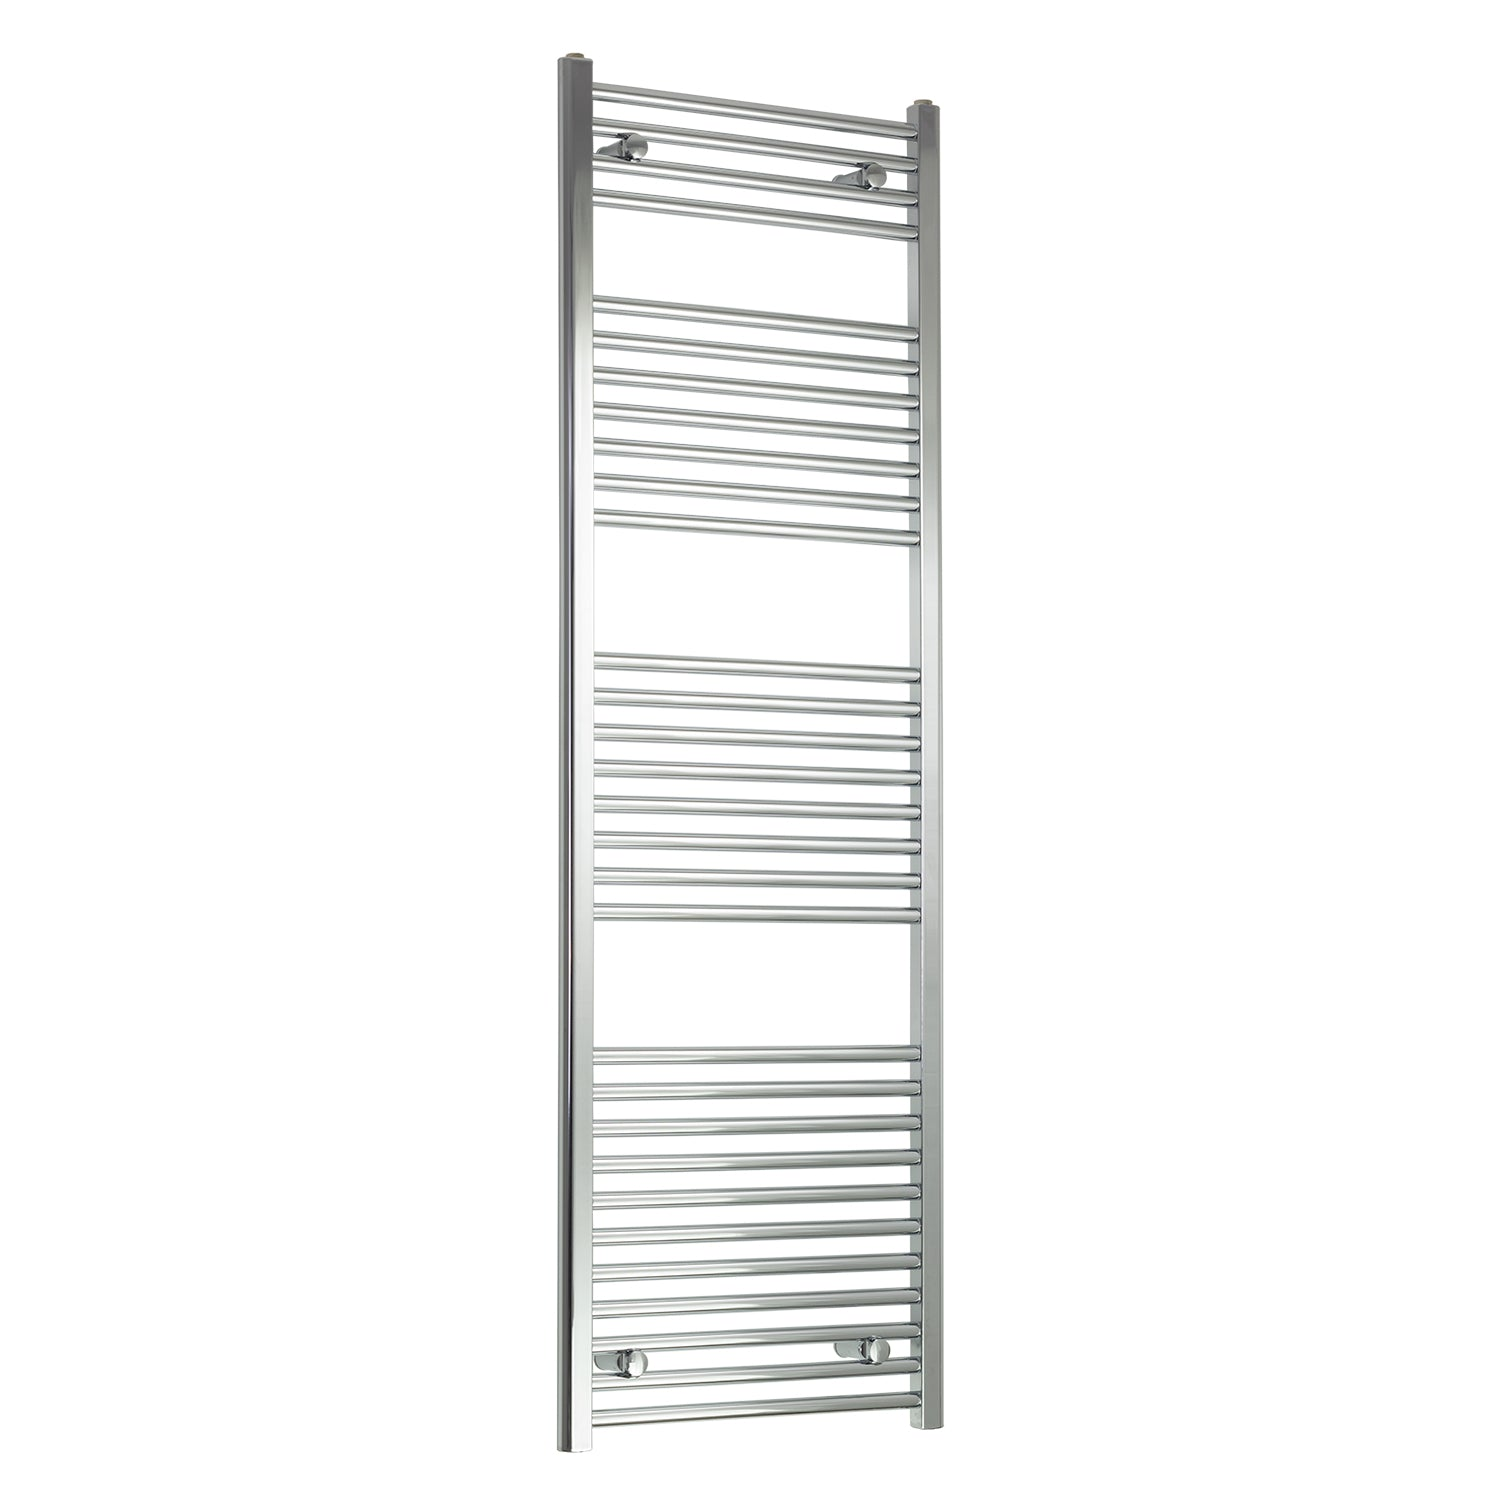 450mm Wide 1700mm High Chrome Towel Rail Radiator